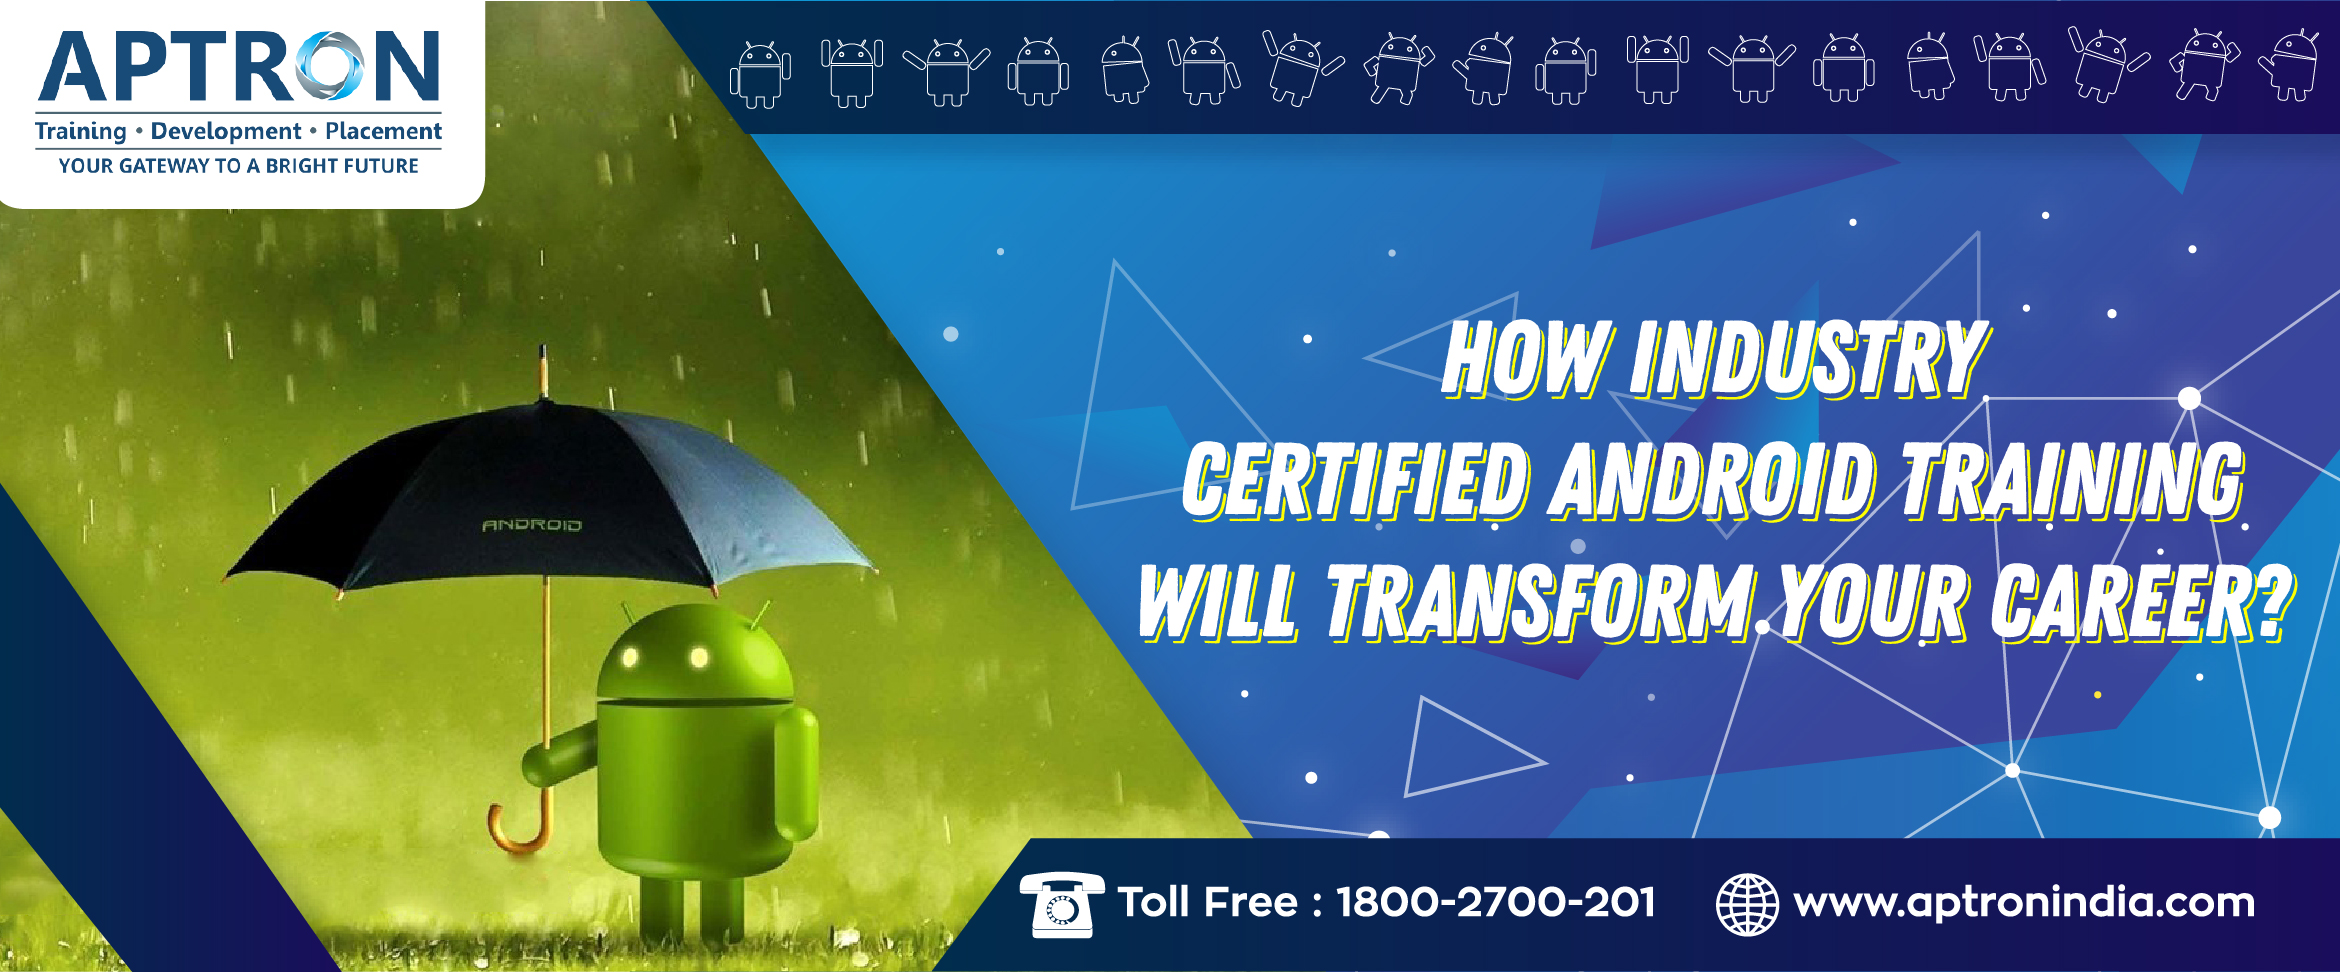 How Industry Certified Android Training will Transform your Career?